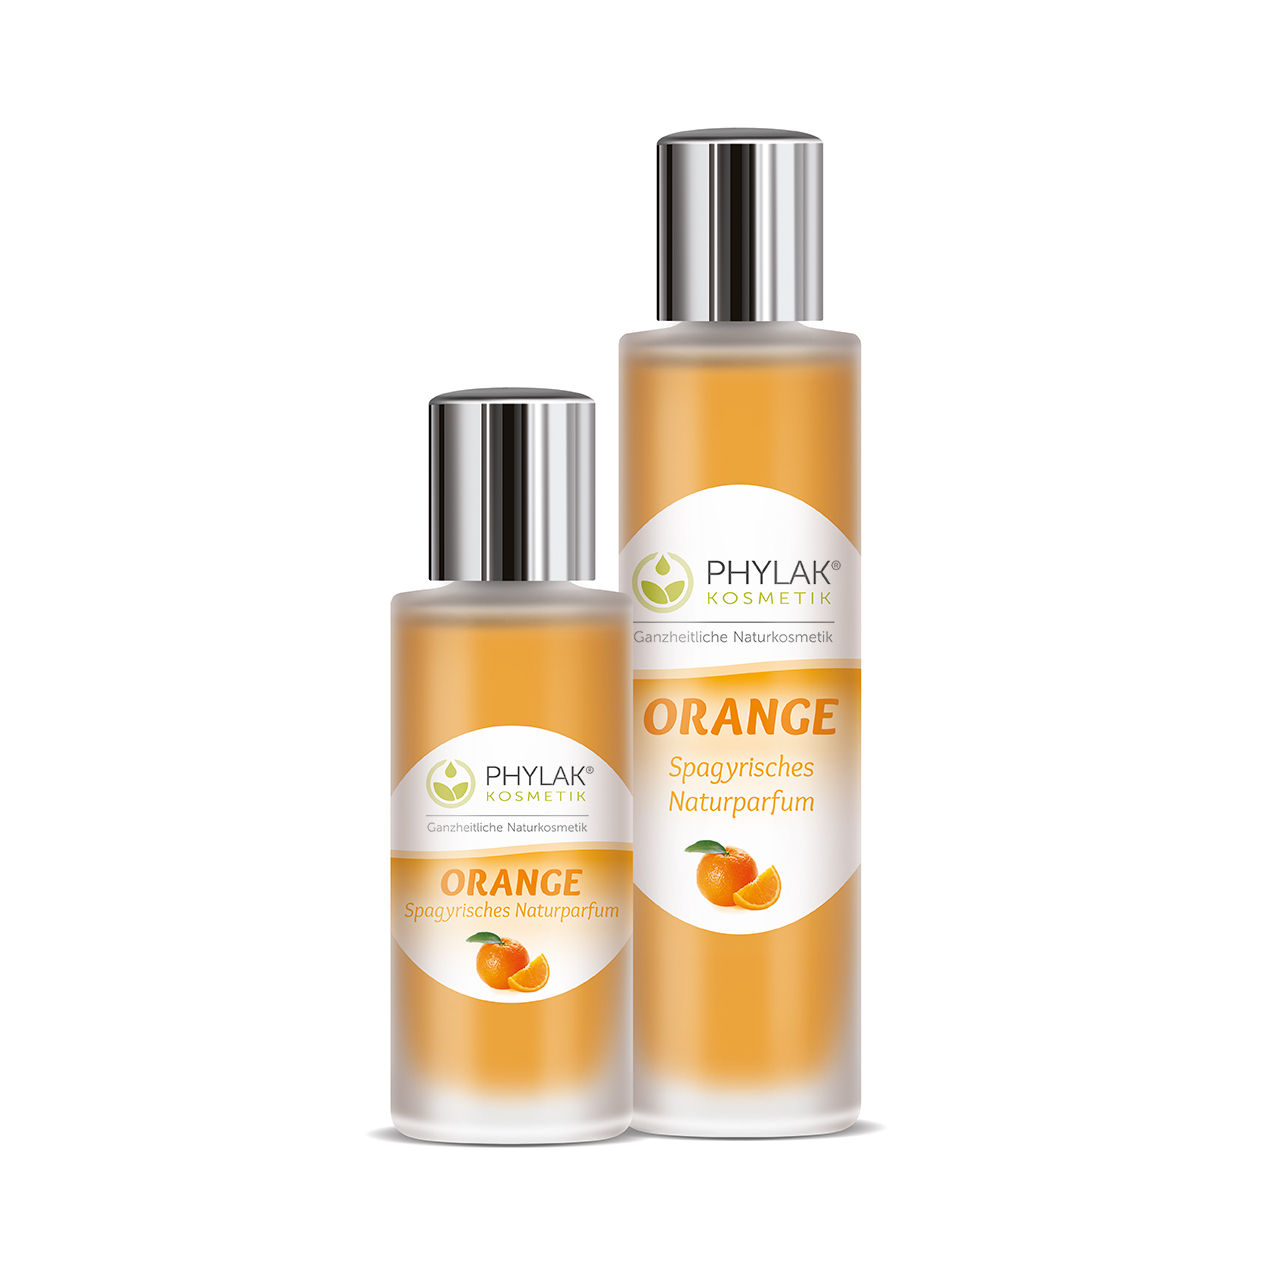 ORANGE - Spagyrisches Naturparfum